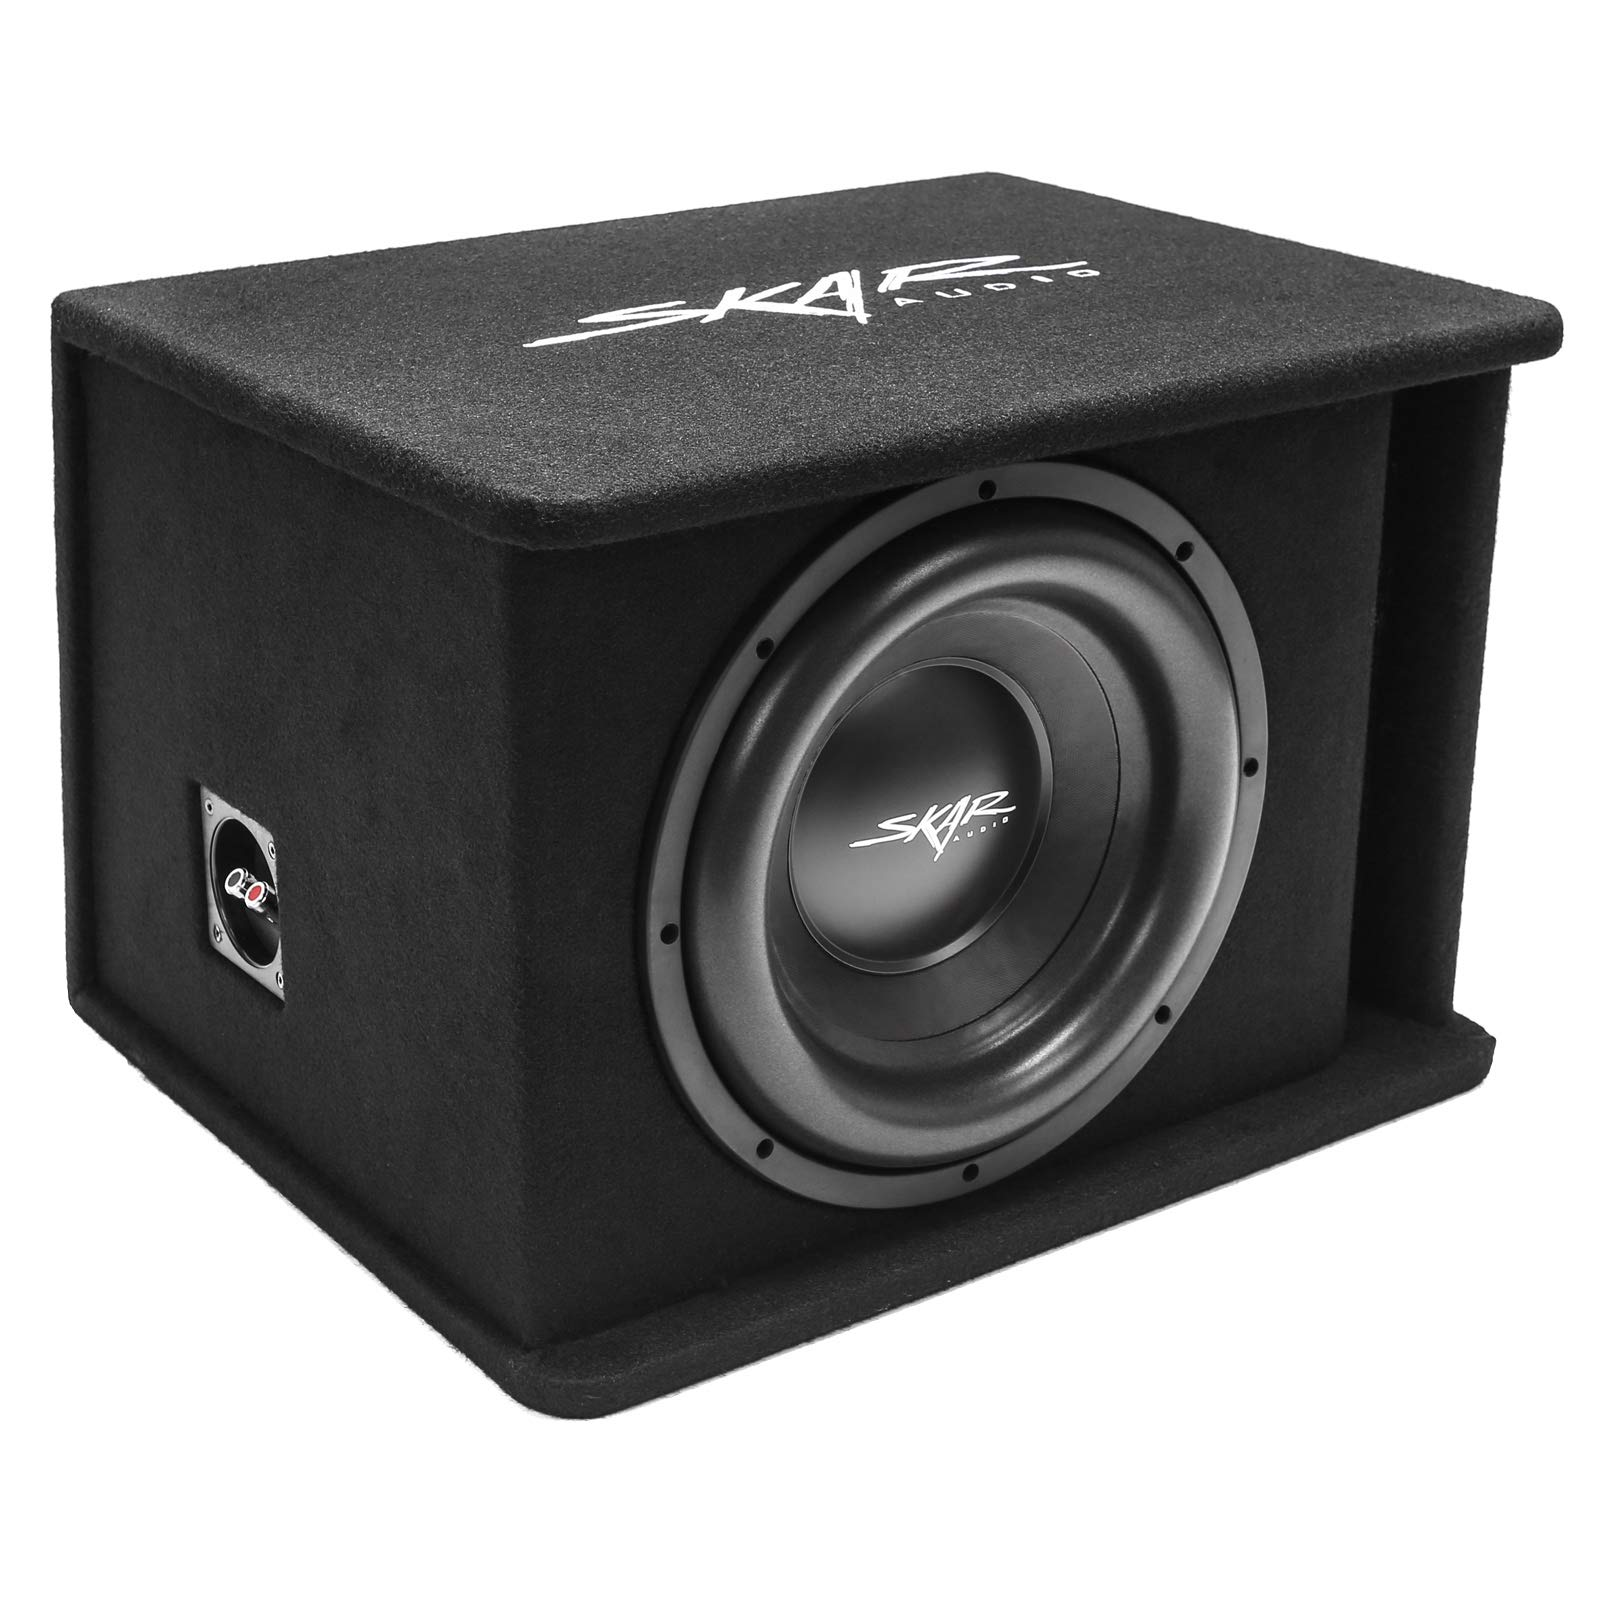 Skar Audio Single 12'' 1200W Loaded Sdr Series Vented Subwoofer Enclosure | SDR-1X12D2 by Skar Audio